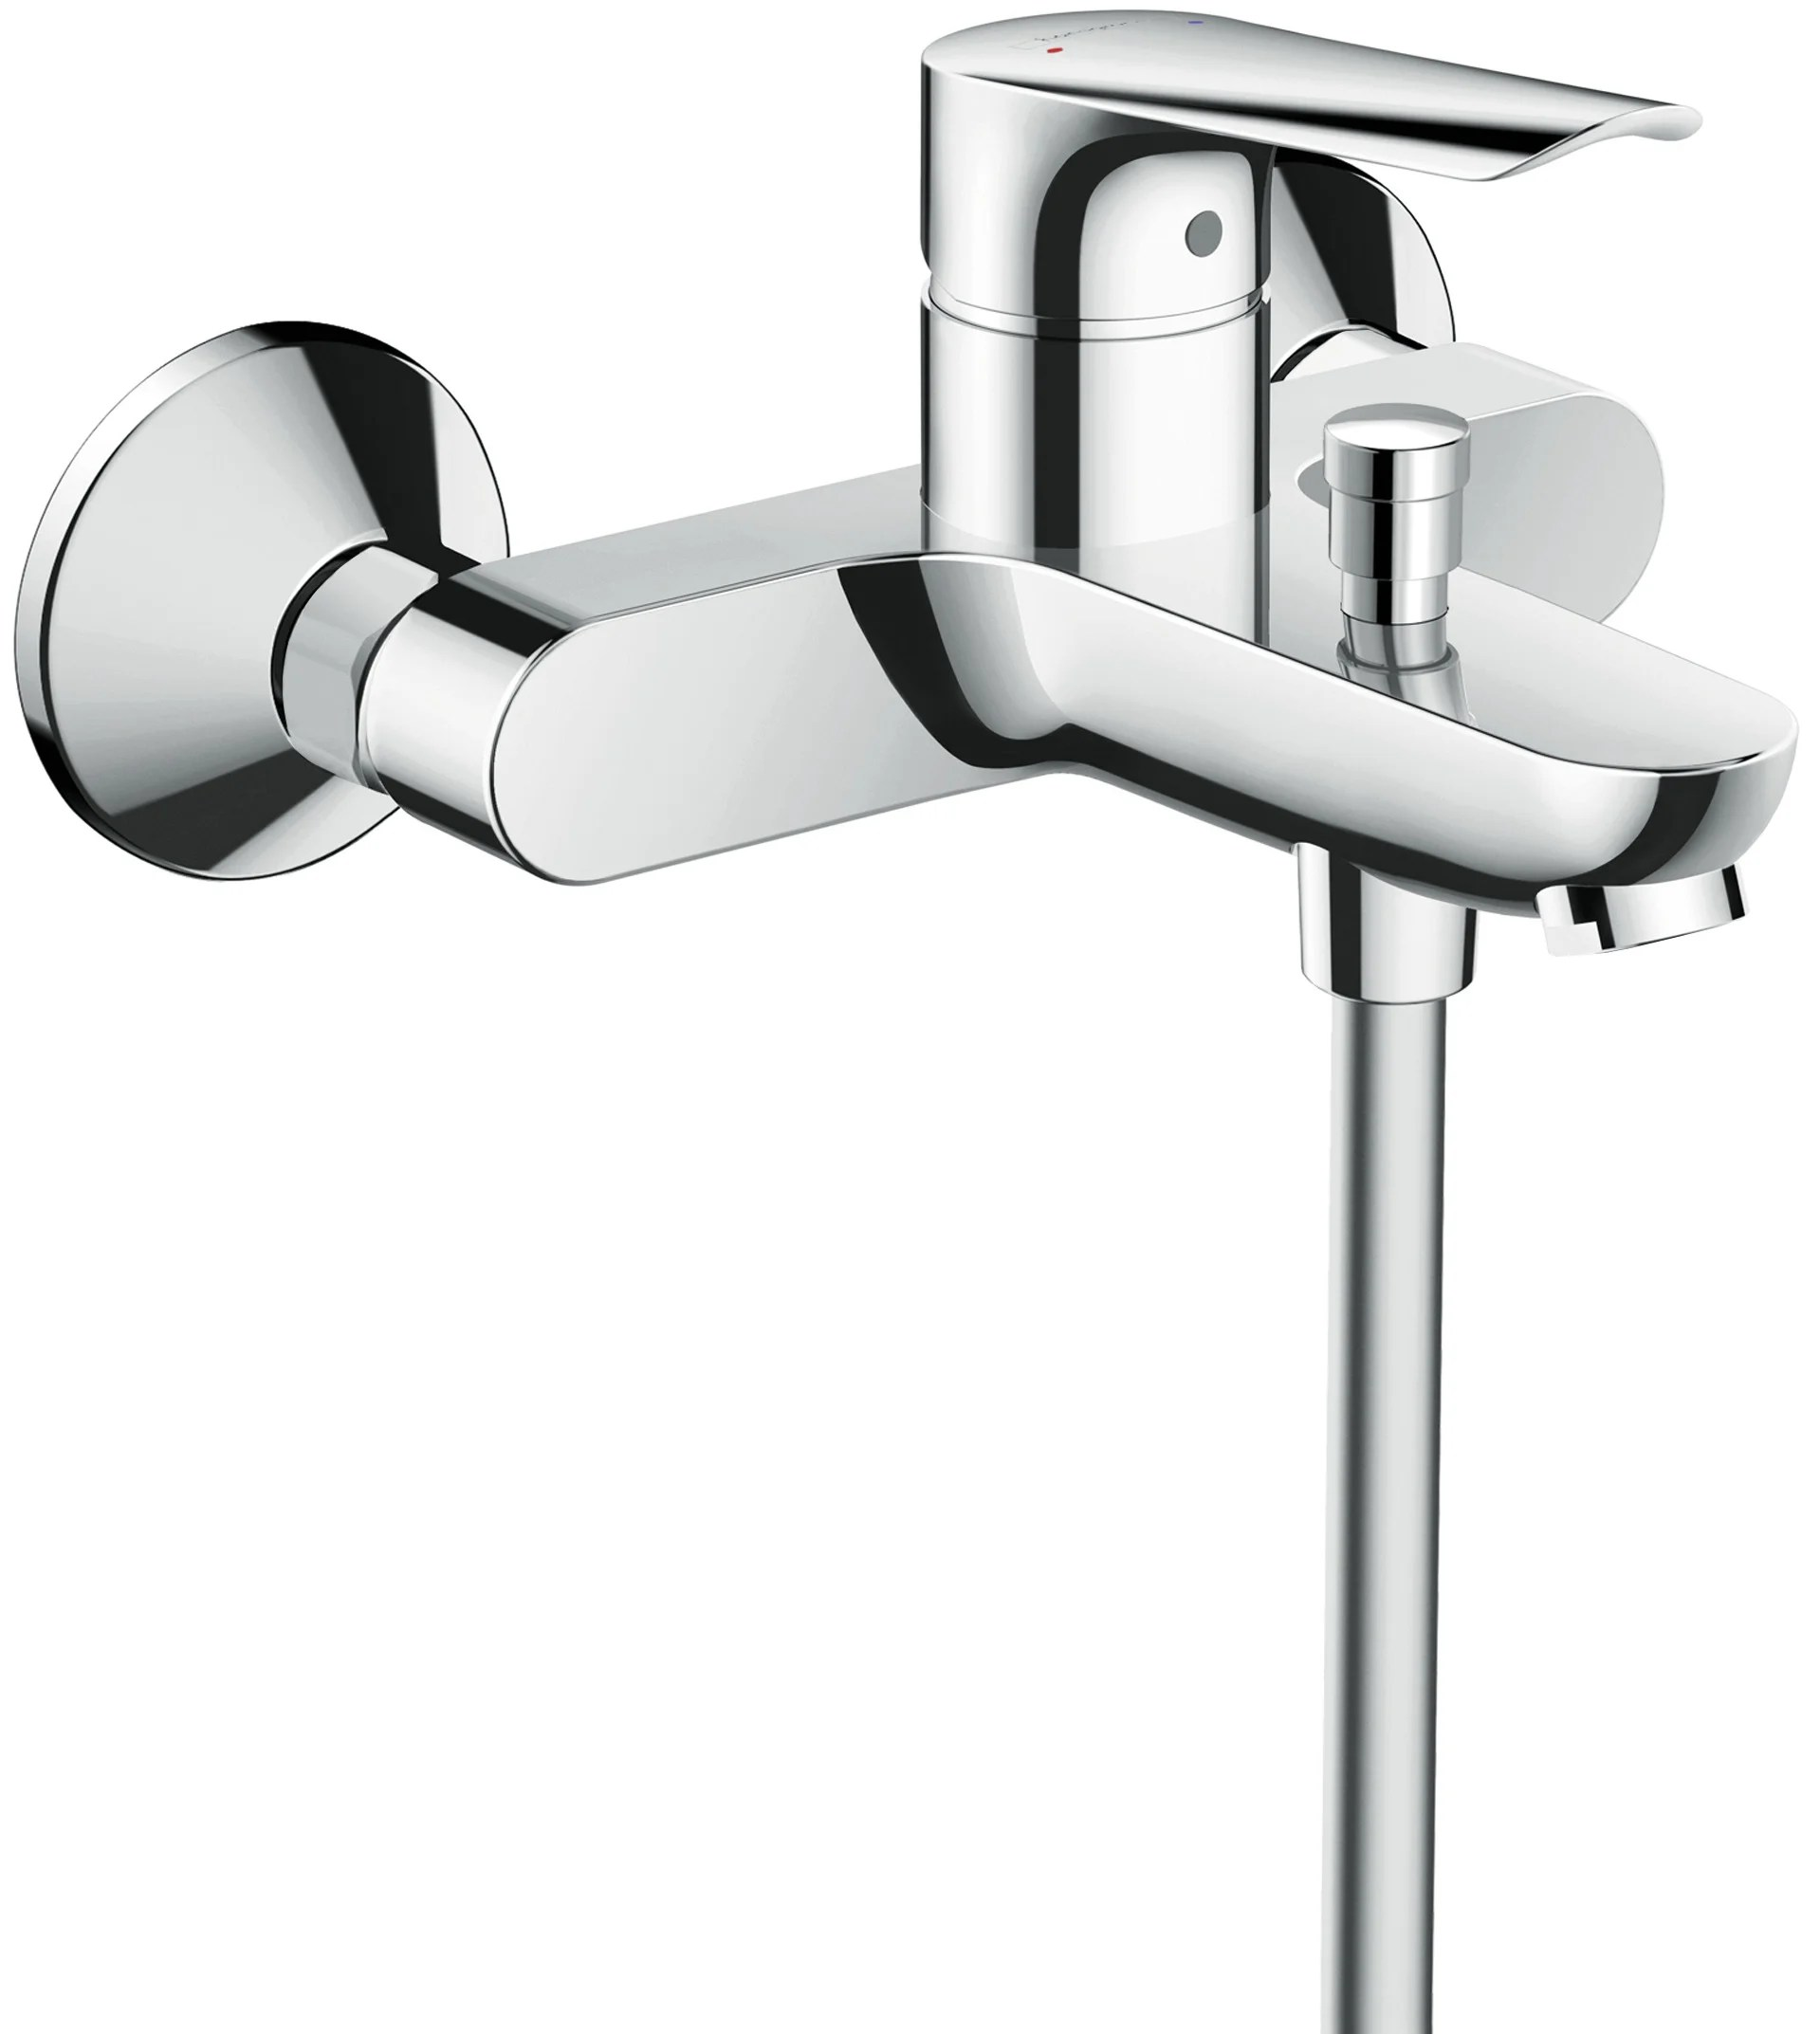 Mitigeur Thermostatique De Baignoire Chrome Brillant Hansgrohe Logis Leroy Merlin